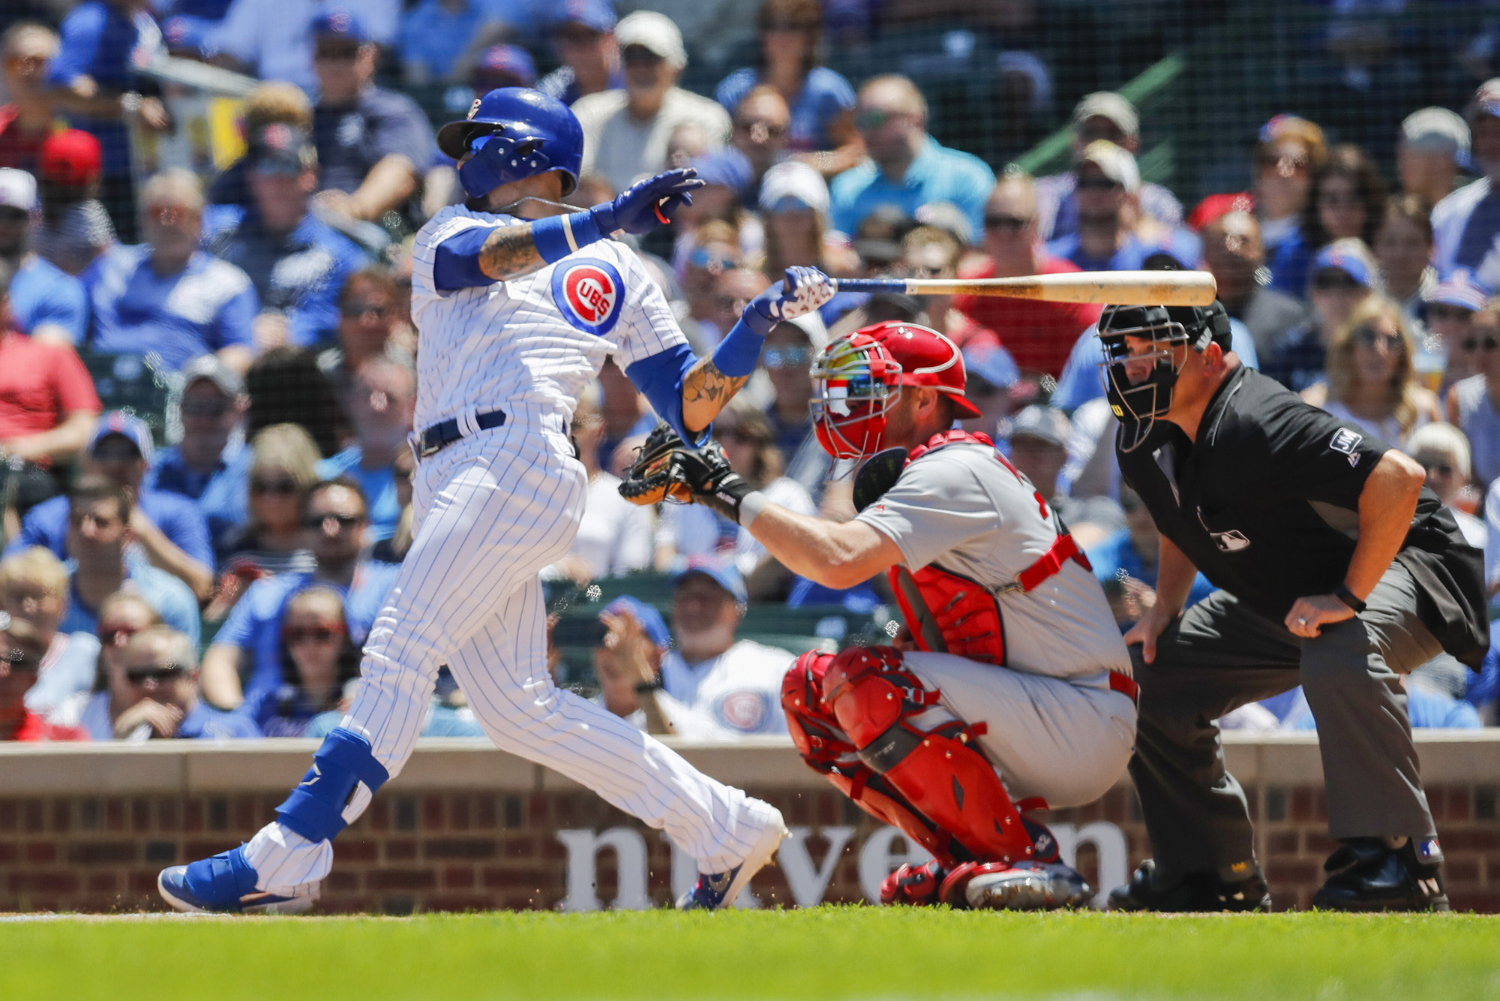 The Chicago Cubs' Javier Baez hits a two-run home run in first the inning against the St. Louis Cardinals at Wrigley Field in Chicago on Friday, June 7, 2019. The Cubs won, 3-1. (Jose M. Osorio/Chicago Tribune/TNS)